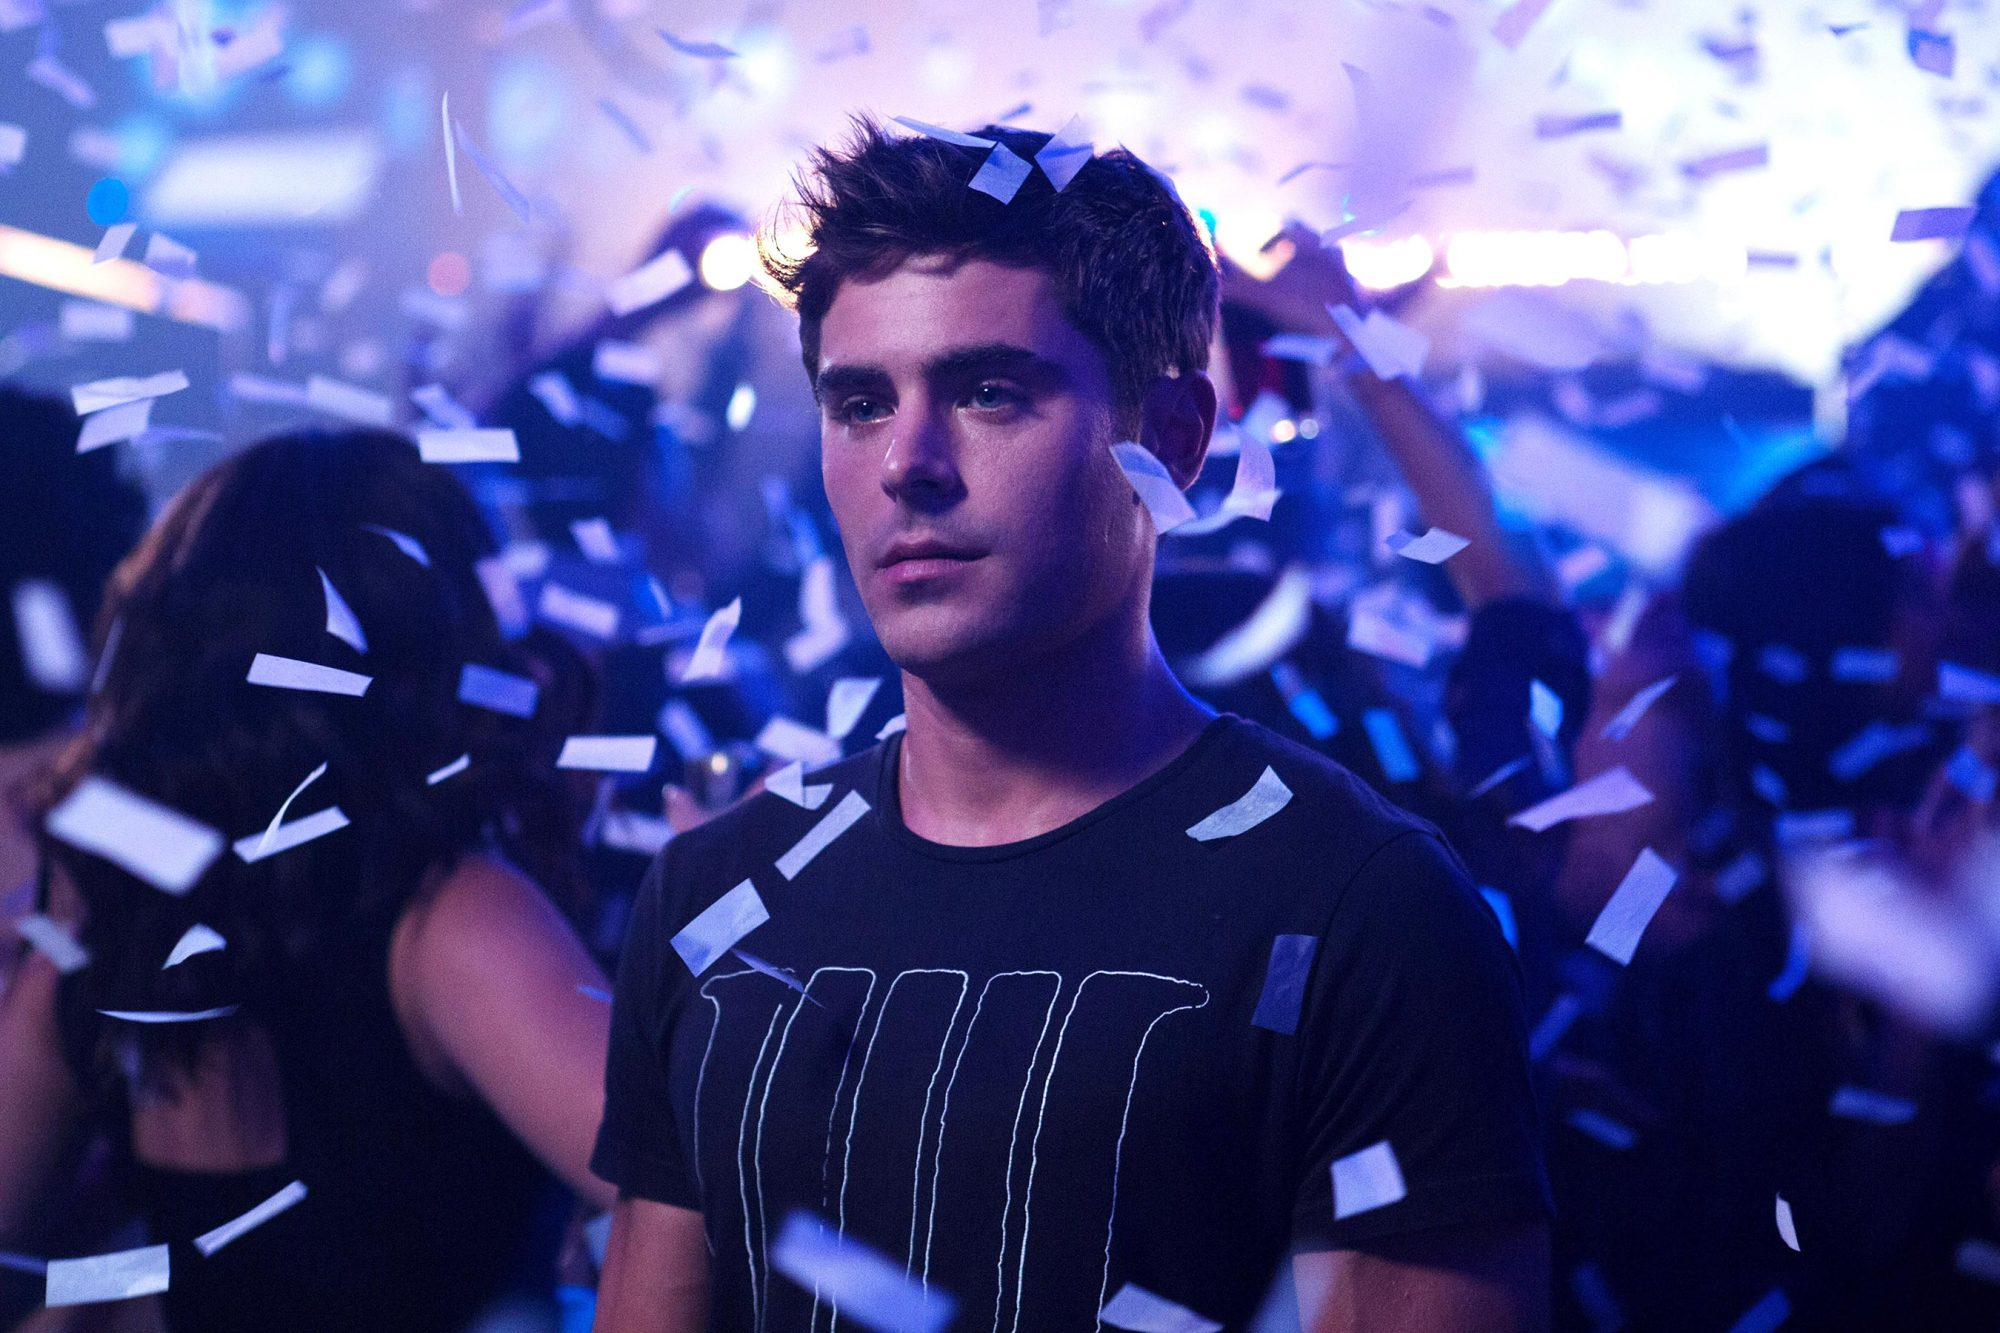 WE ARE YOUR FRIENDS, Zac Efron, 2015. ph: Anne Marie Fox / © Warner Bros. Pictures / courtesy